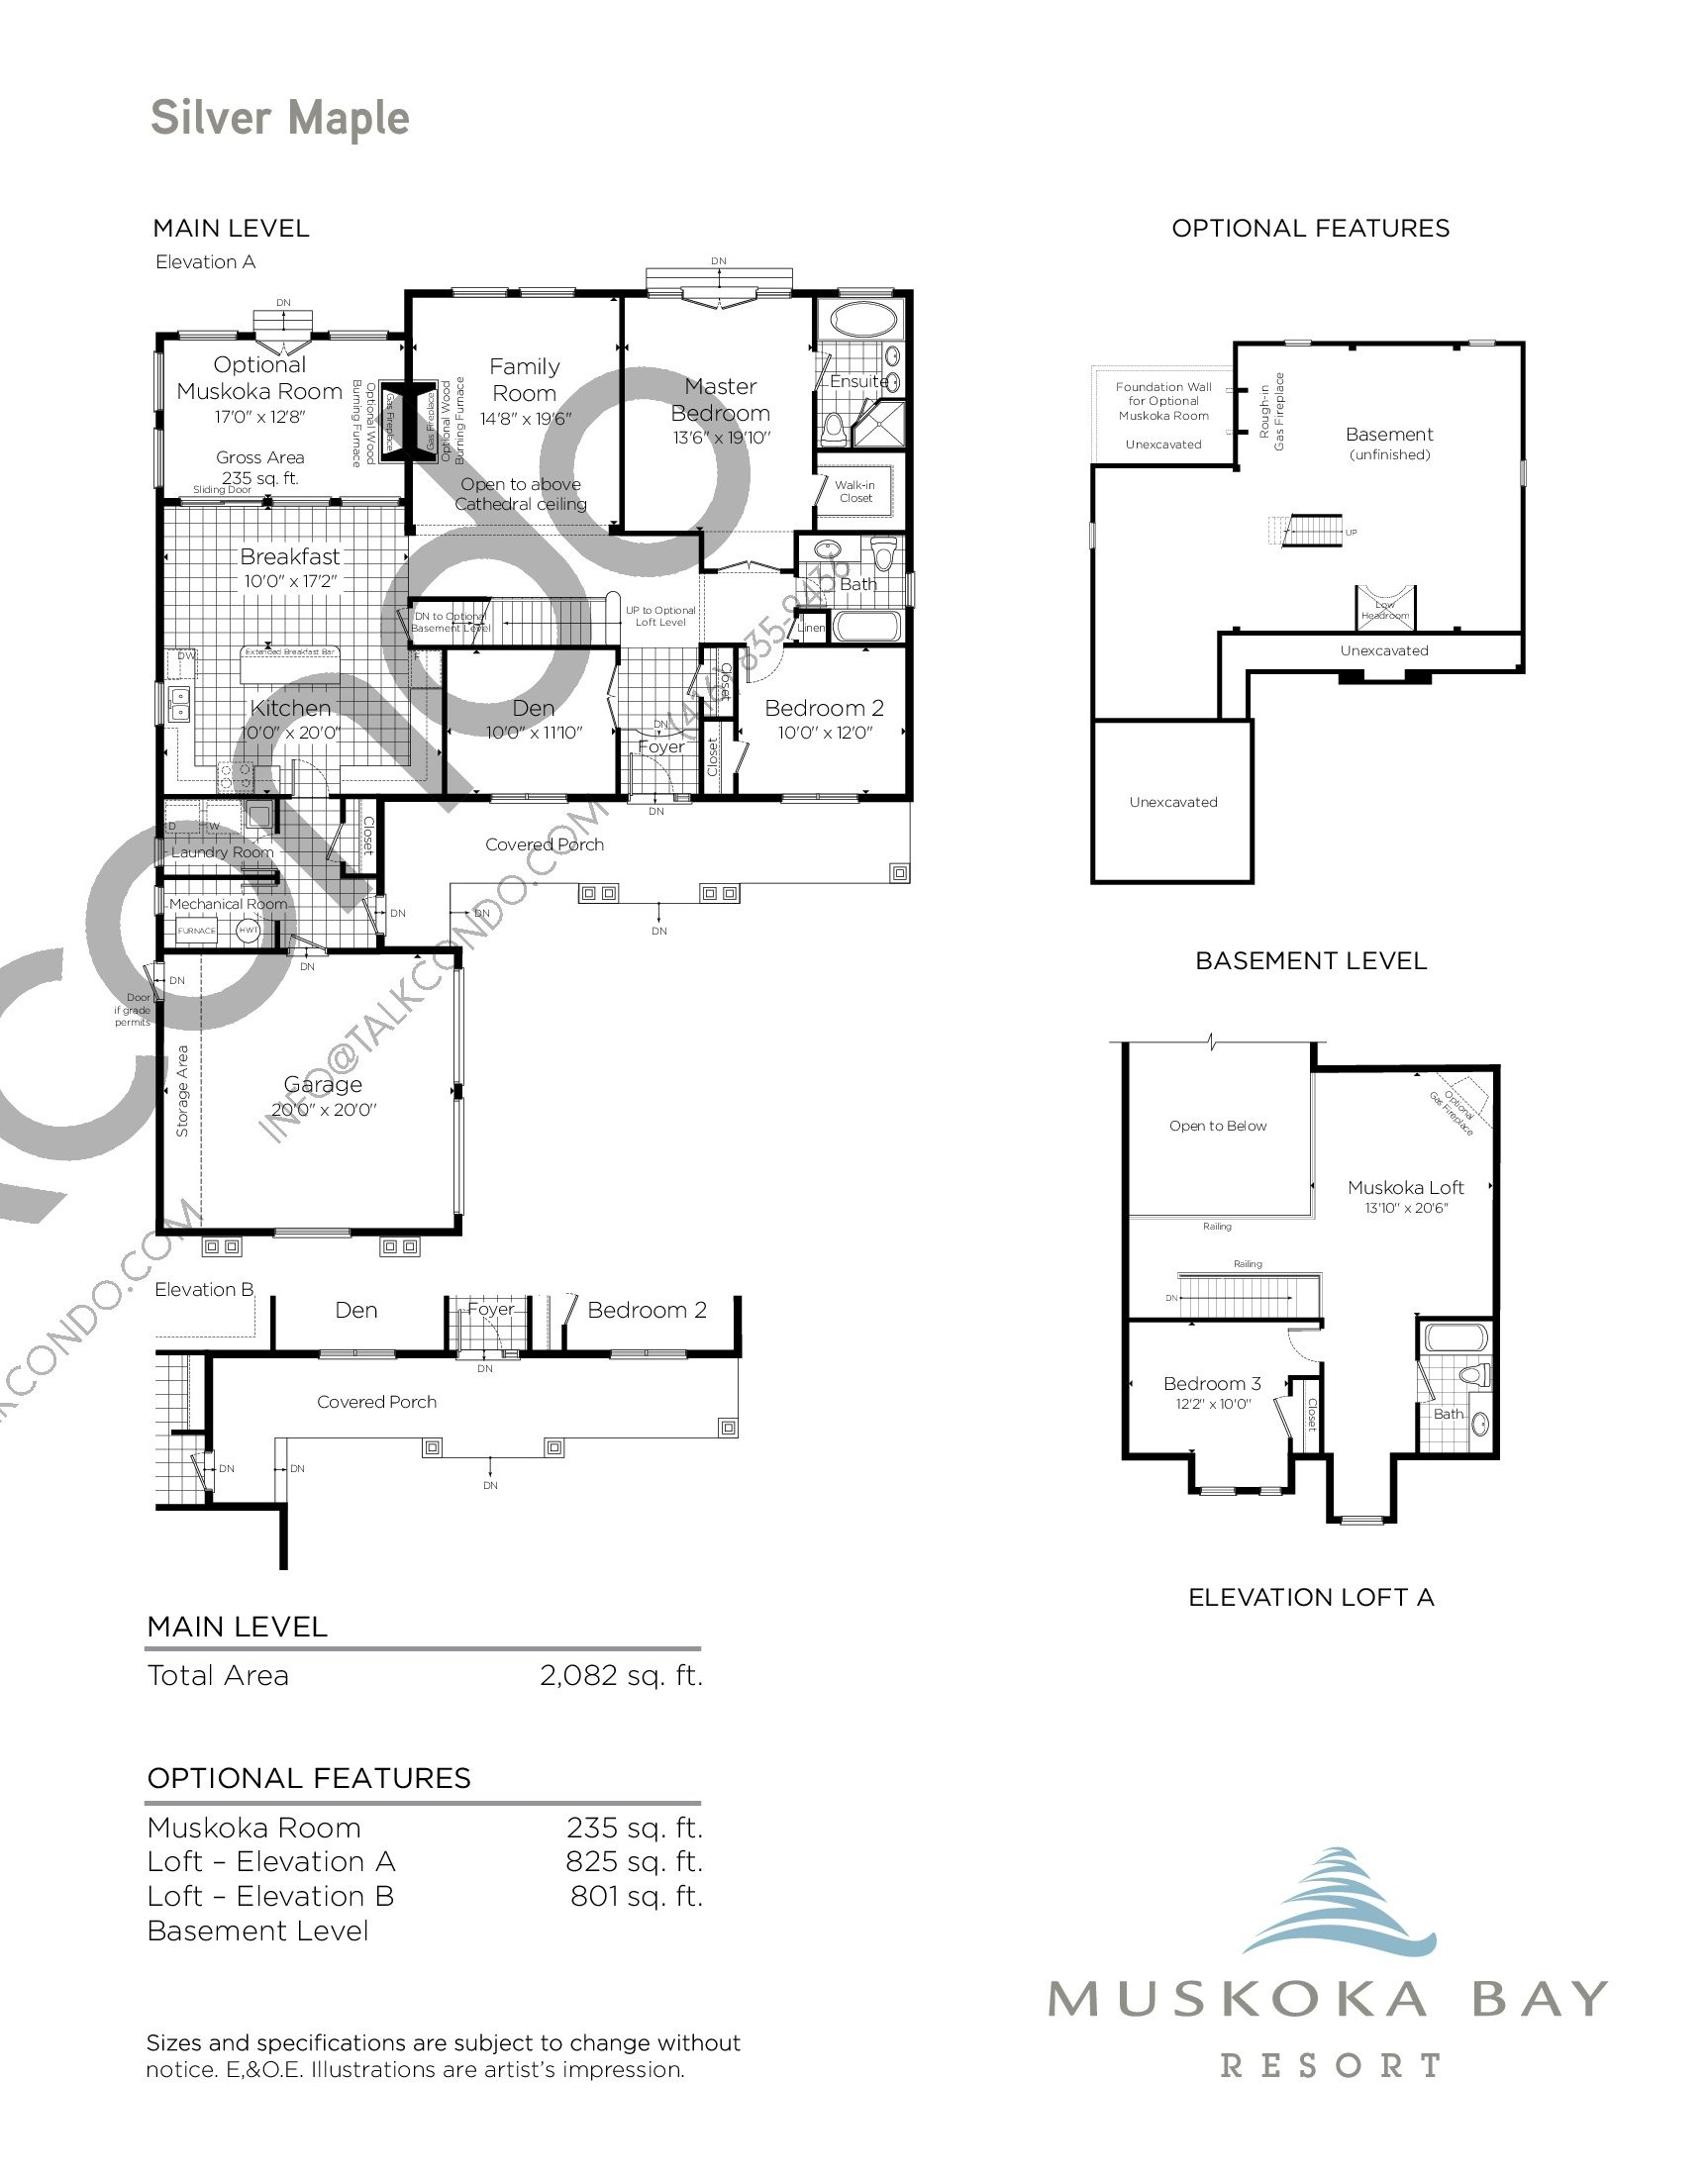 Silver Maple Floor Plan at Muskoka Bay Resort - 3142 sq.ft